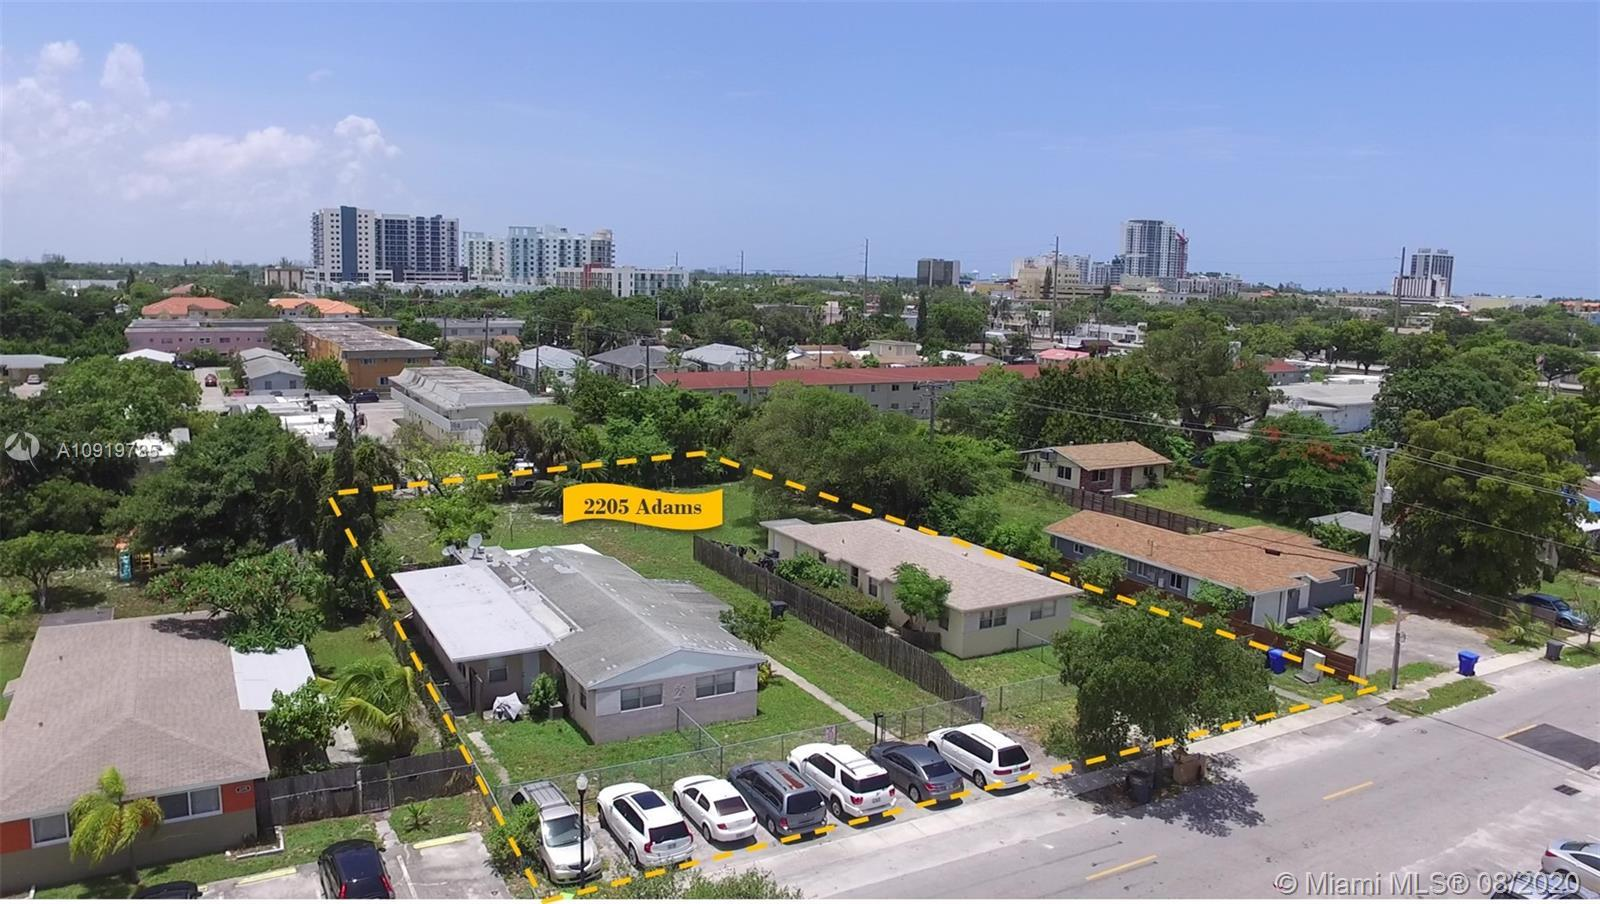 The rectangular lot measures +/- 26,650 and includes two duplexes generating excess income. The City